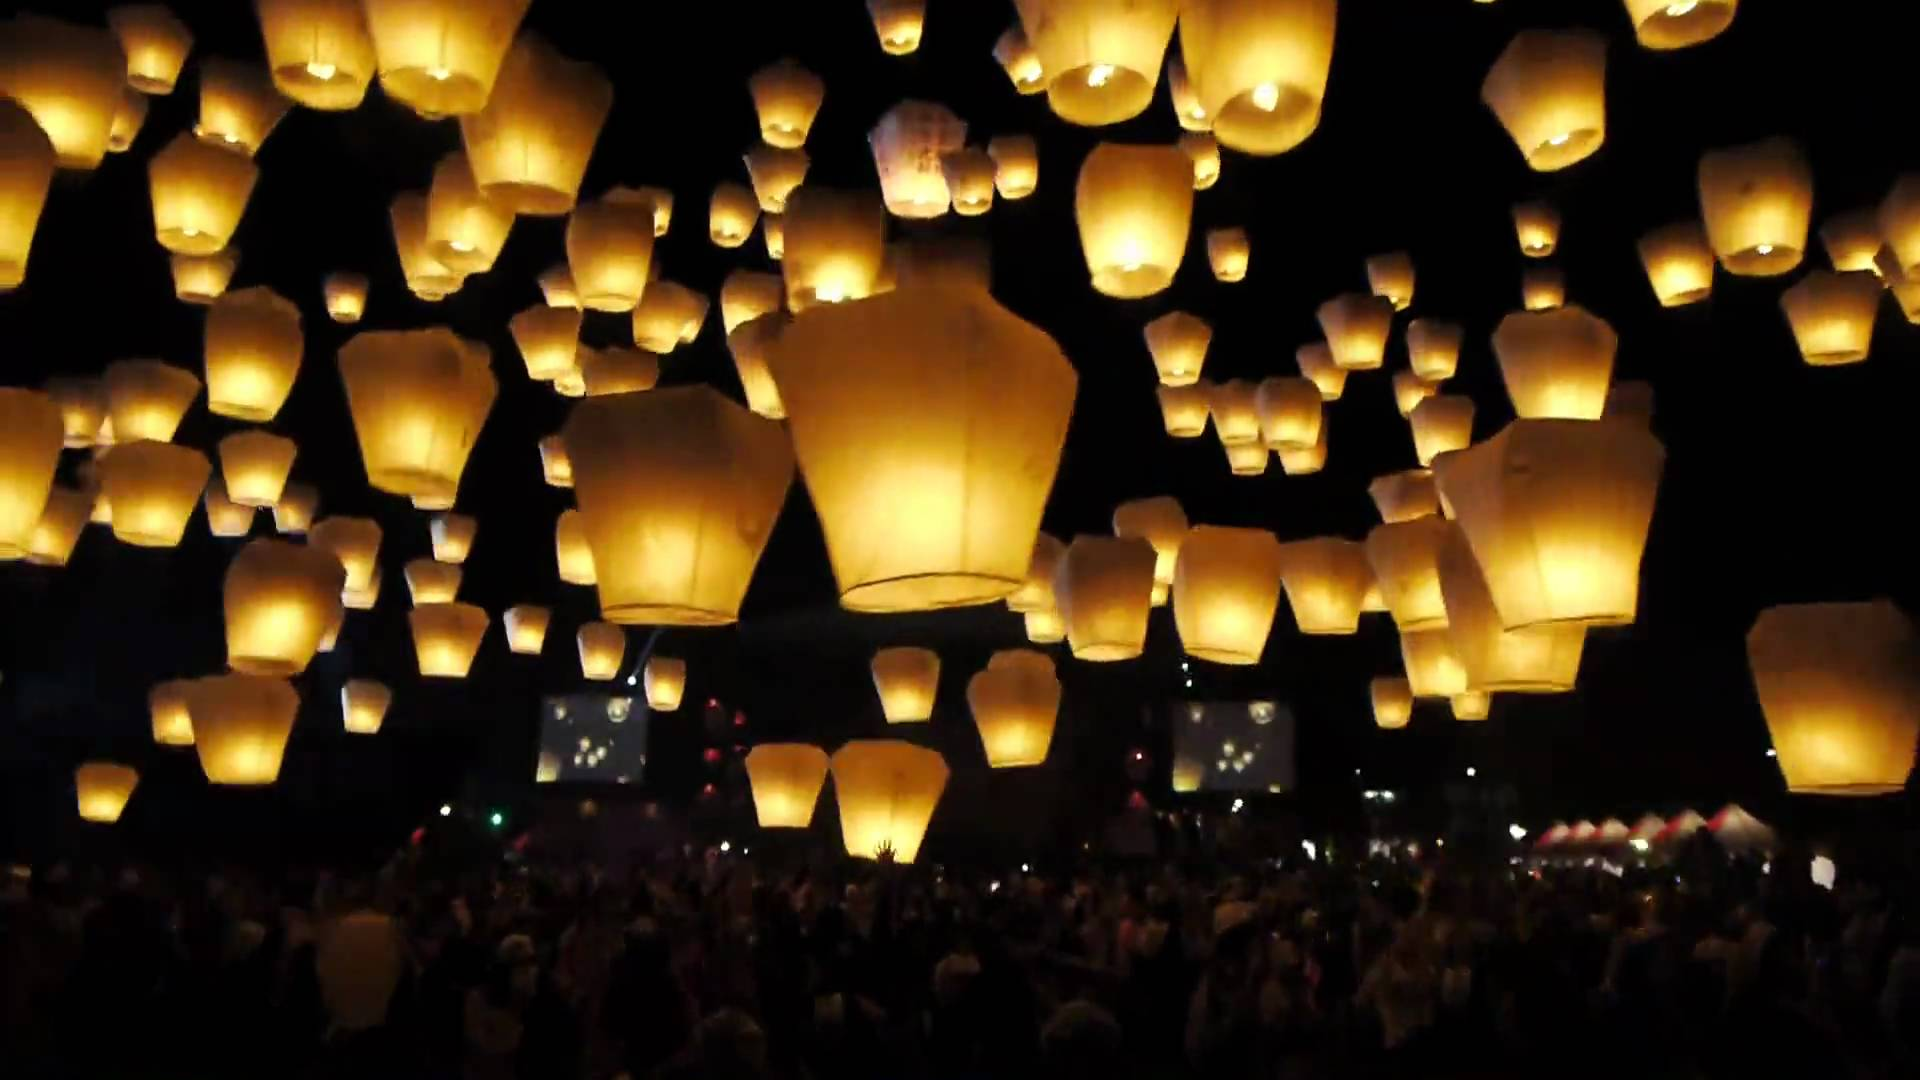 Sky Lanterns Wallpaper Iphone Lanterns Wallpapers Wallpaper Cave